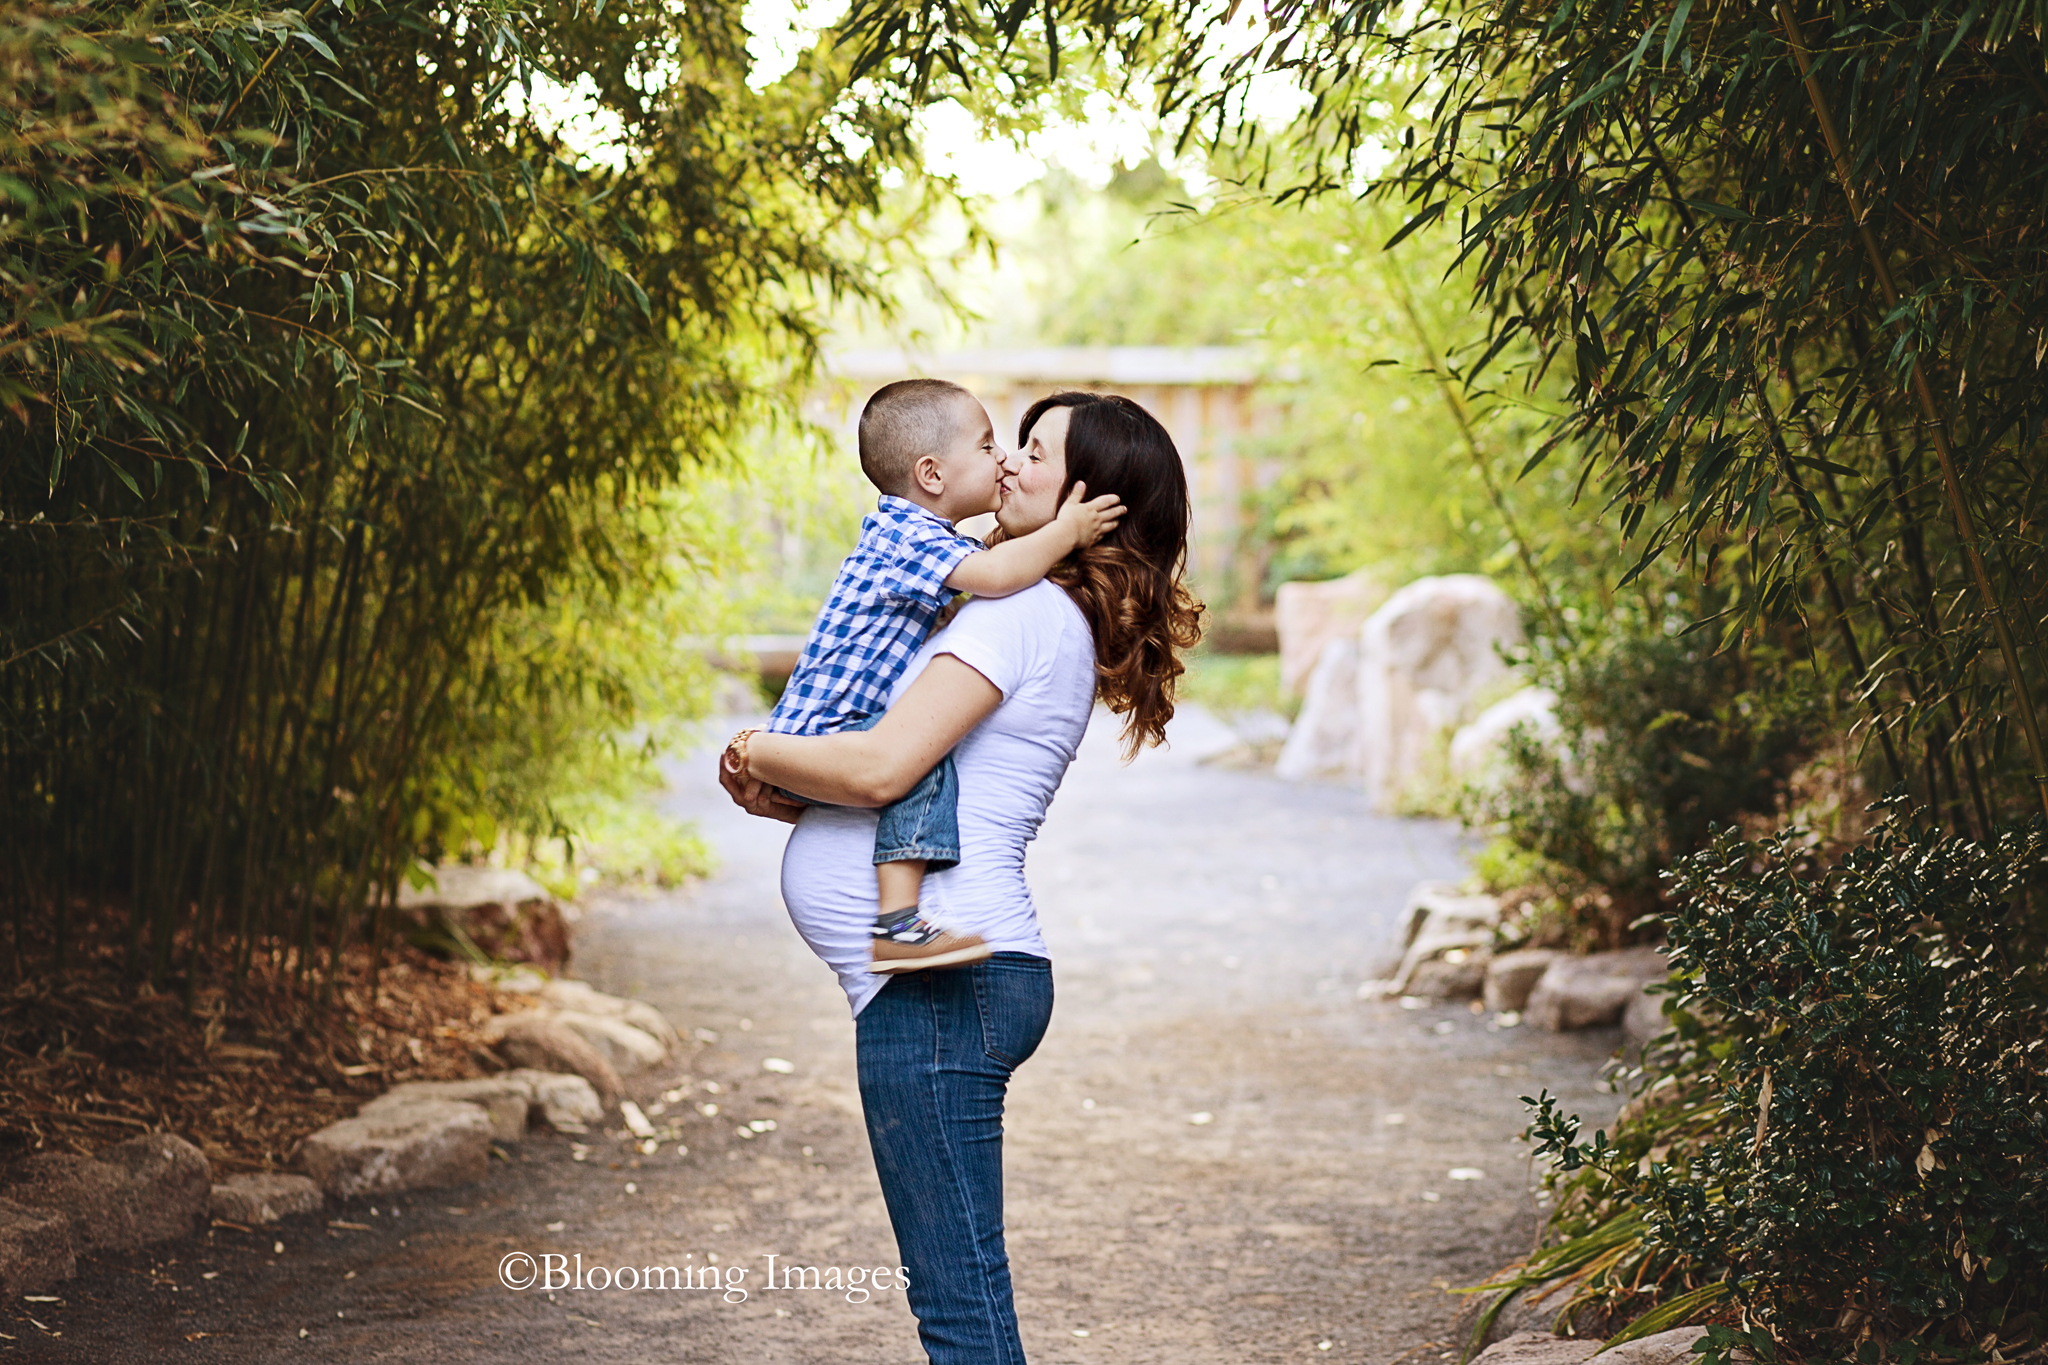 Albuquerque Maternity Photographer, Maternity Photographers in Albuquerque, Maternity Photographer, Botanical Gardens Maternity Photos